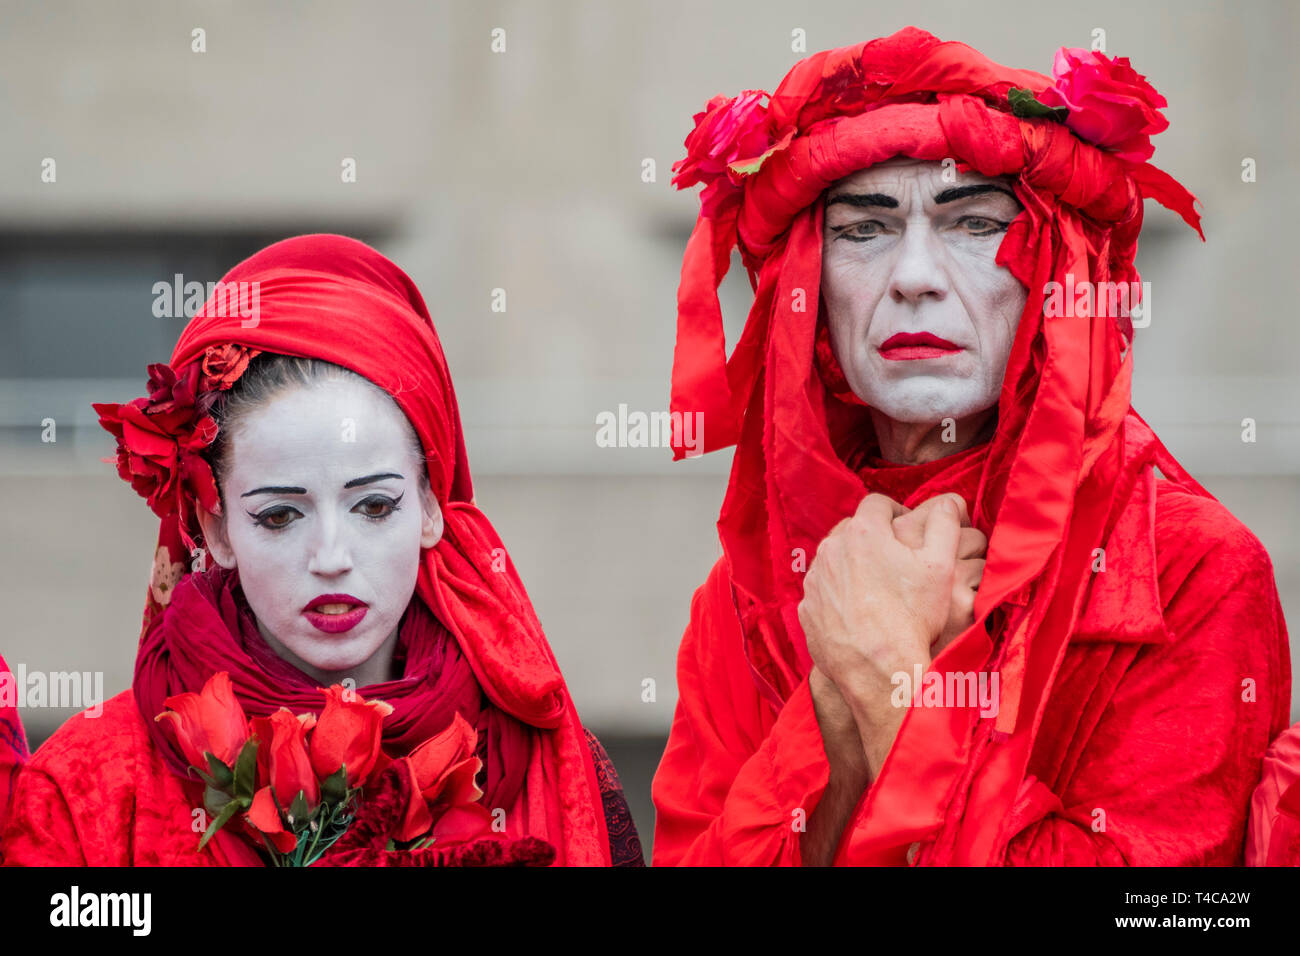 London, UK. 16th Apr, 2019. Performance artists, on Waterloo Bridge, represent the blood of all the species which will become exctinct, including possibly humans -  Day 2 - Protestors from Extinction Rebellion block several (Hyde Park, Oxford Cuircus, Warterloo Bridge and Parliament Square) junctions in London as part of their ongoing protest to demand action by the UK Government on the 'climate chrisis'. The action is part of an international co-ordinated protest. Credit: Guy Bell/Alamy Live News Stock Photo